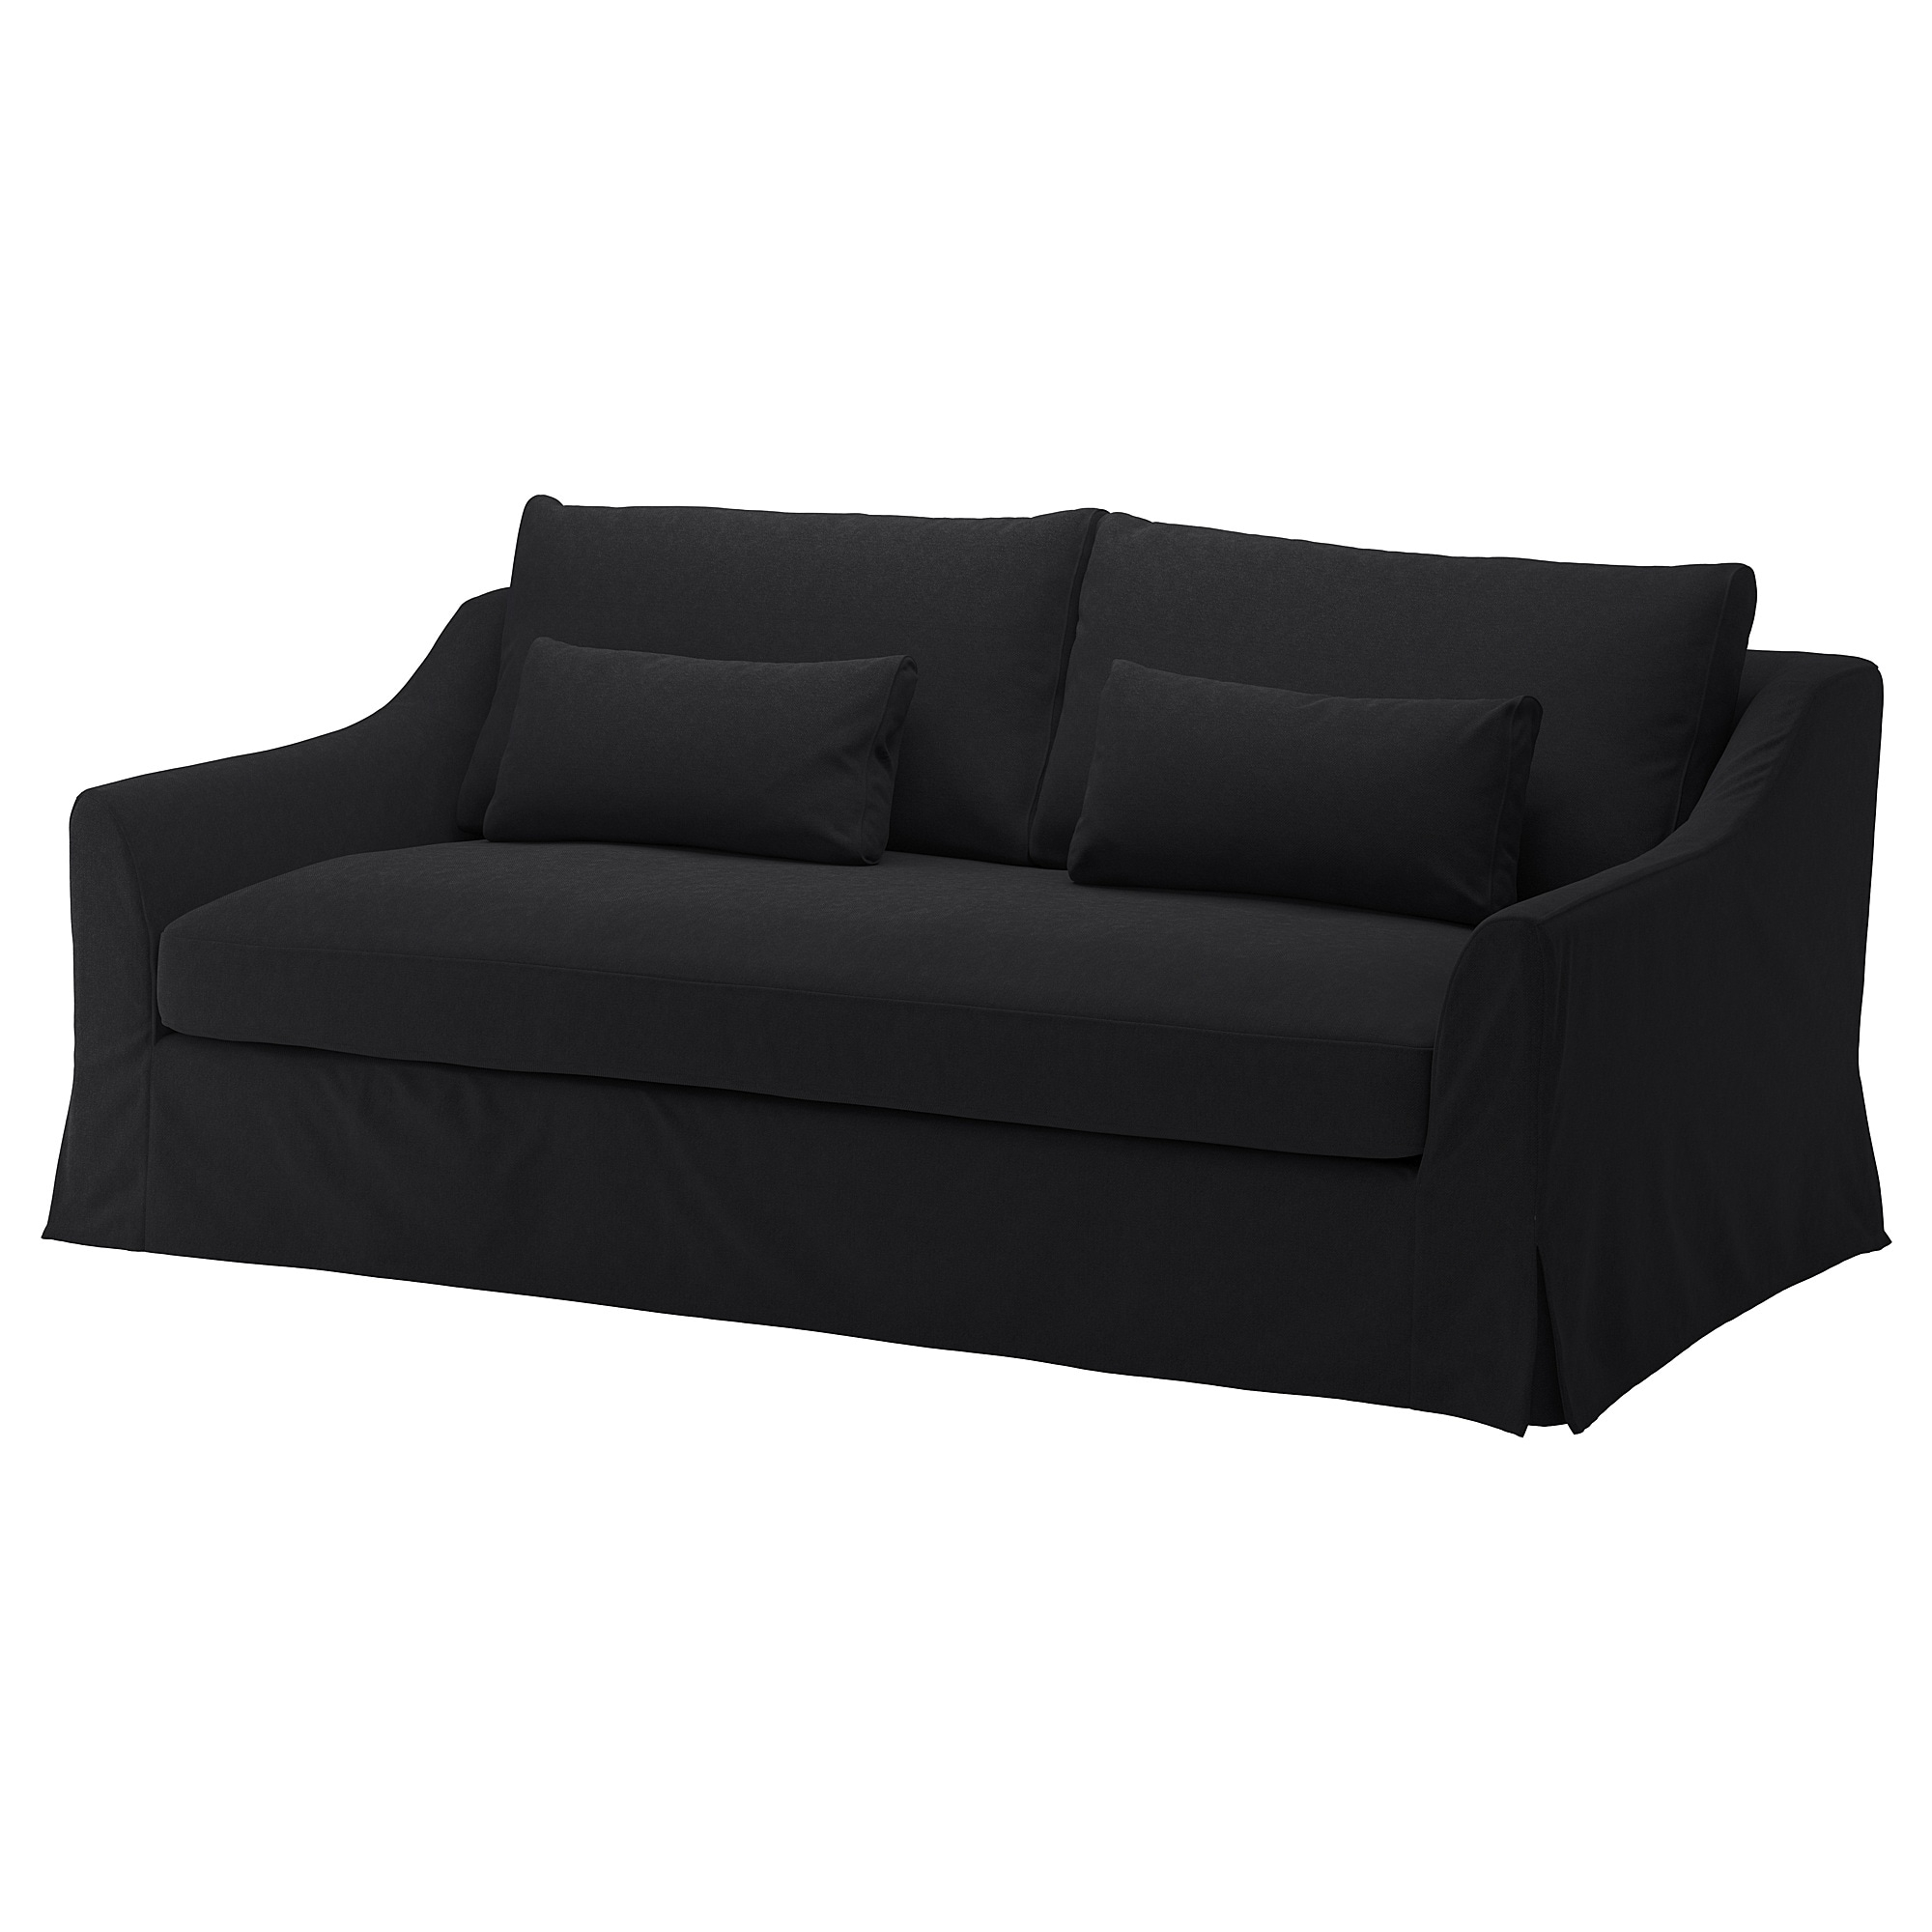 Sofas – Settees, Couches & More | Ikea With Regard To Loft Arm Sofa Chairs (View 15 of 25)